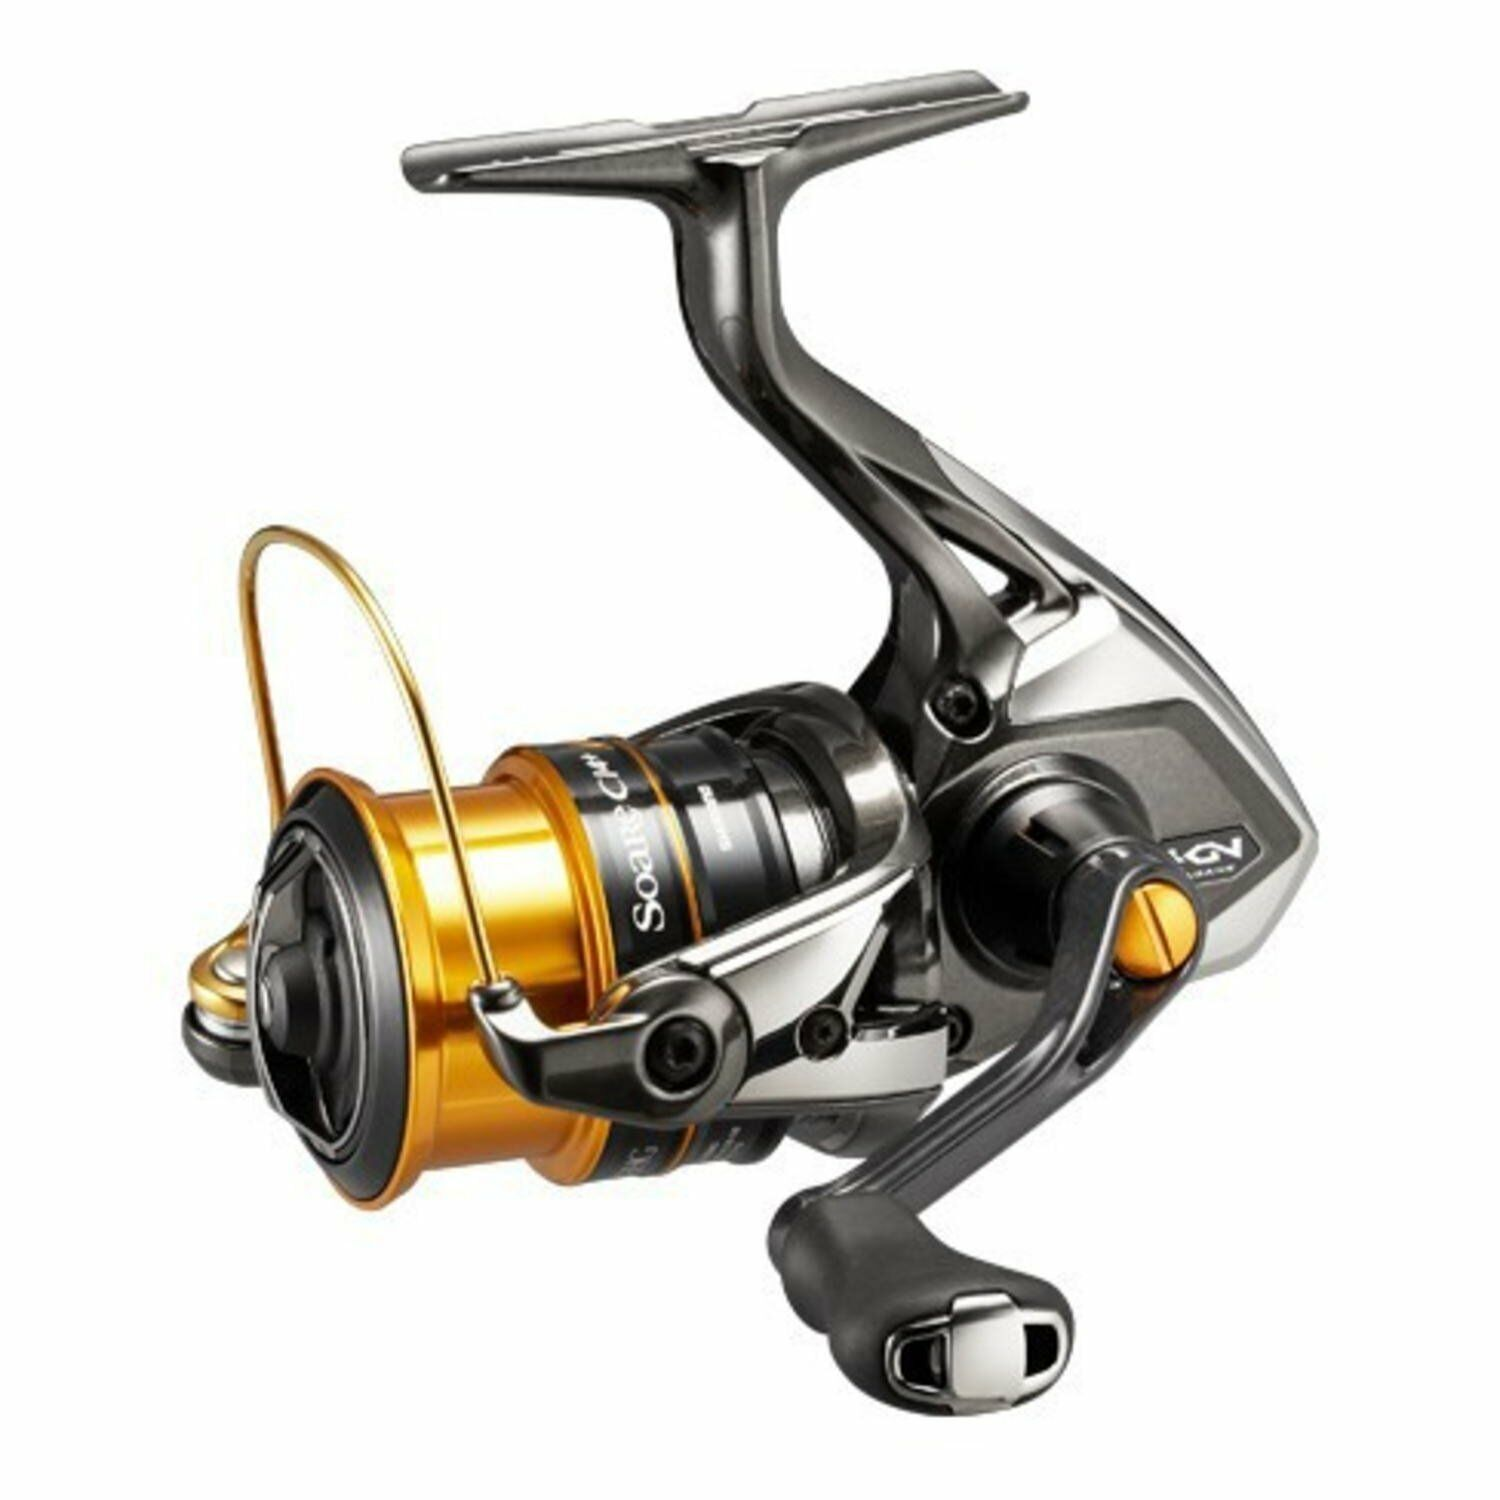 SHIMANO 17 Soare CI4+ 2000S HG Spinning Reel New in Box